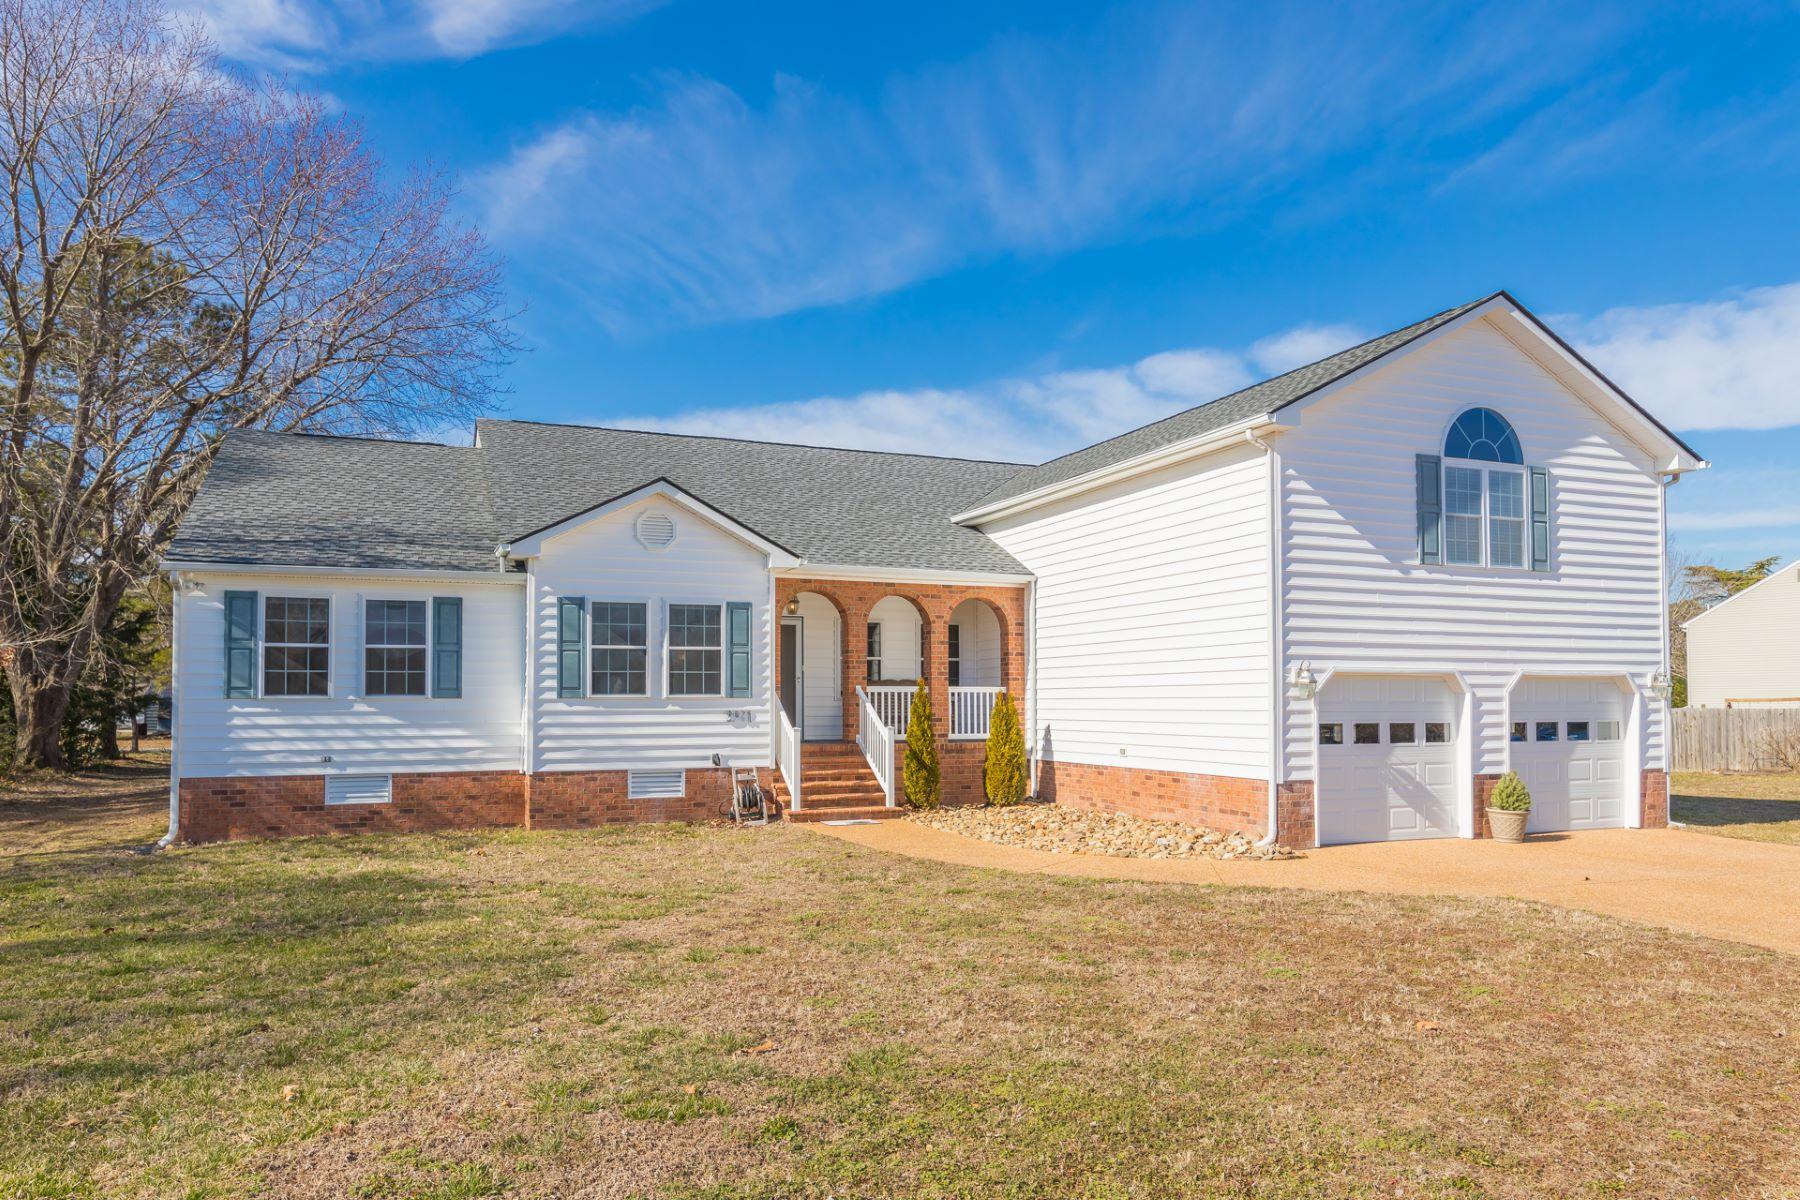 Single Family Home for Sale at Pocahontas Meadows 2971 Wendy Court Hayes, Virginia 23072 United States